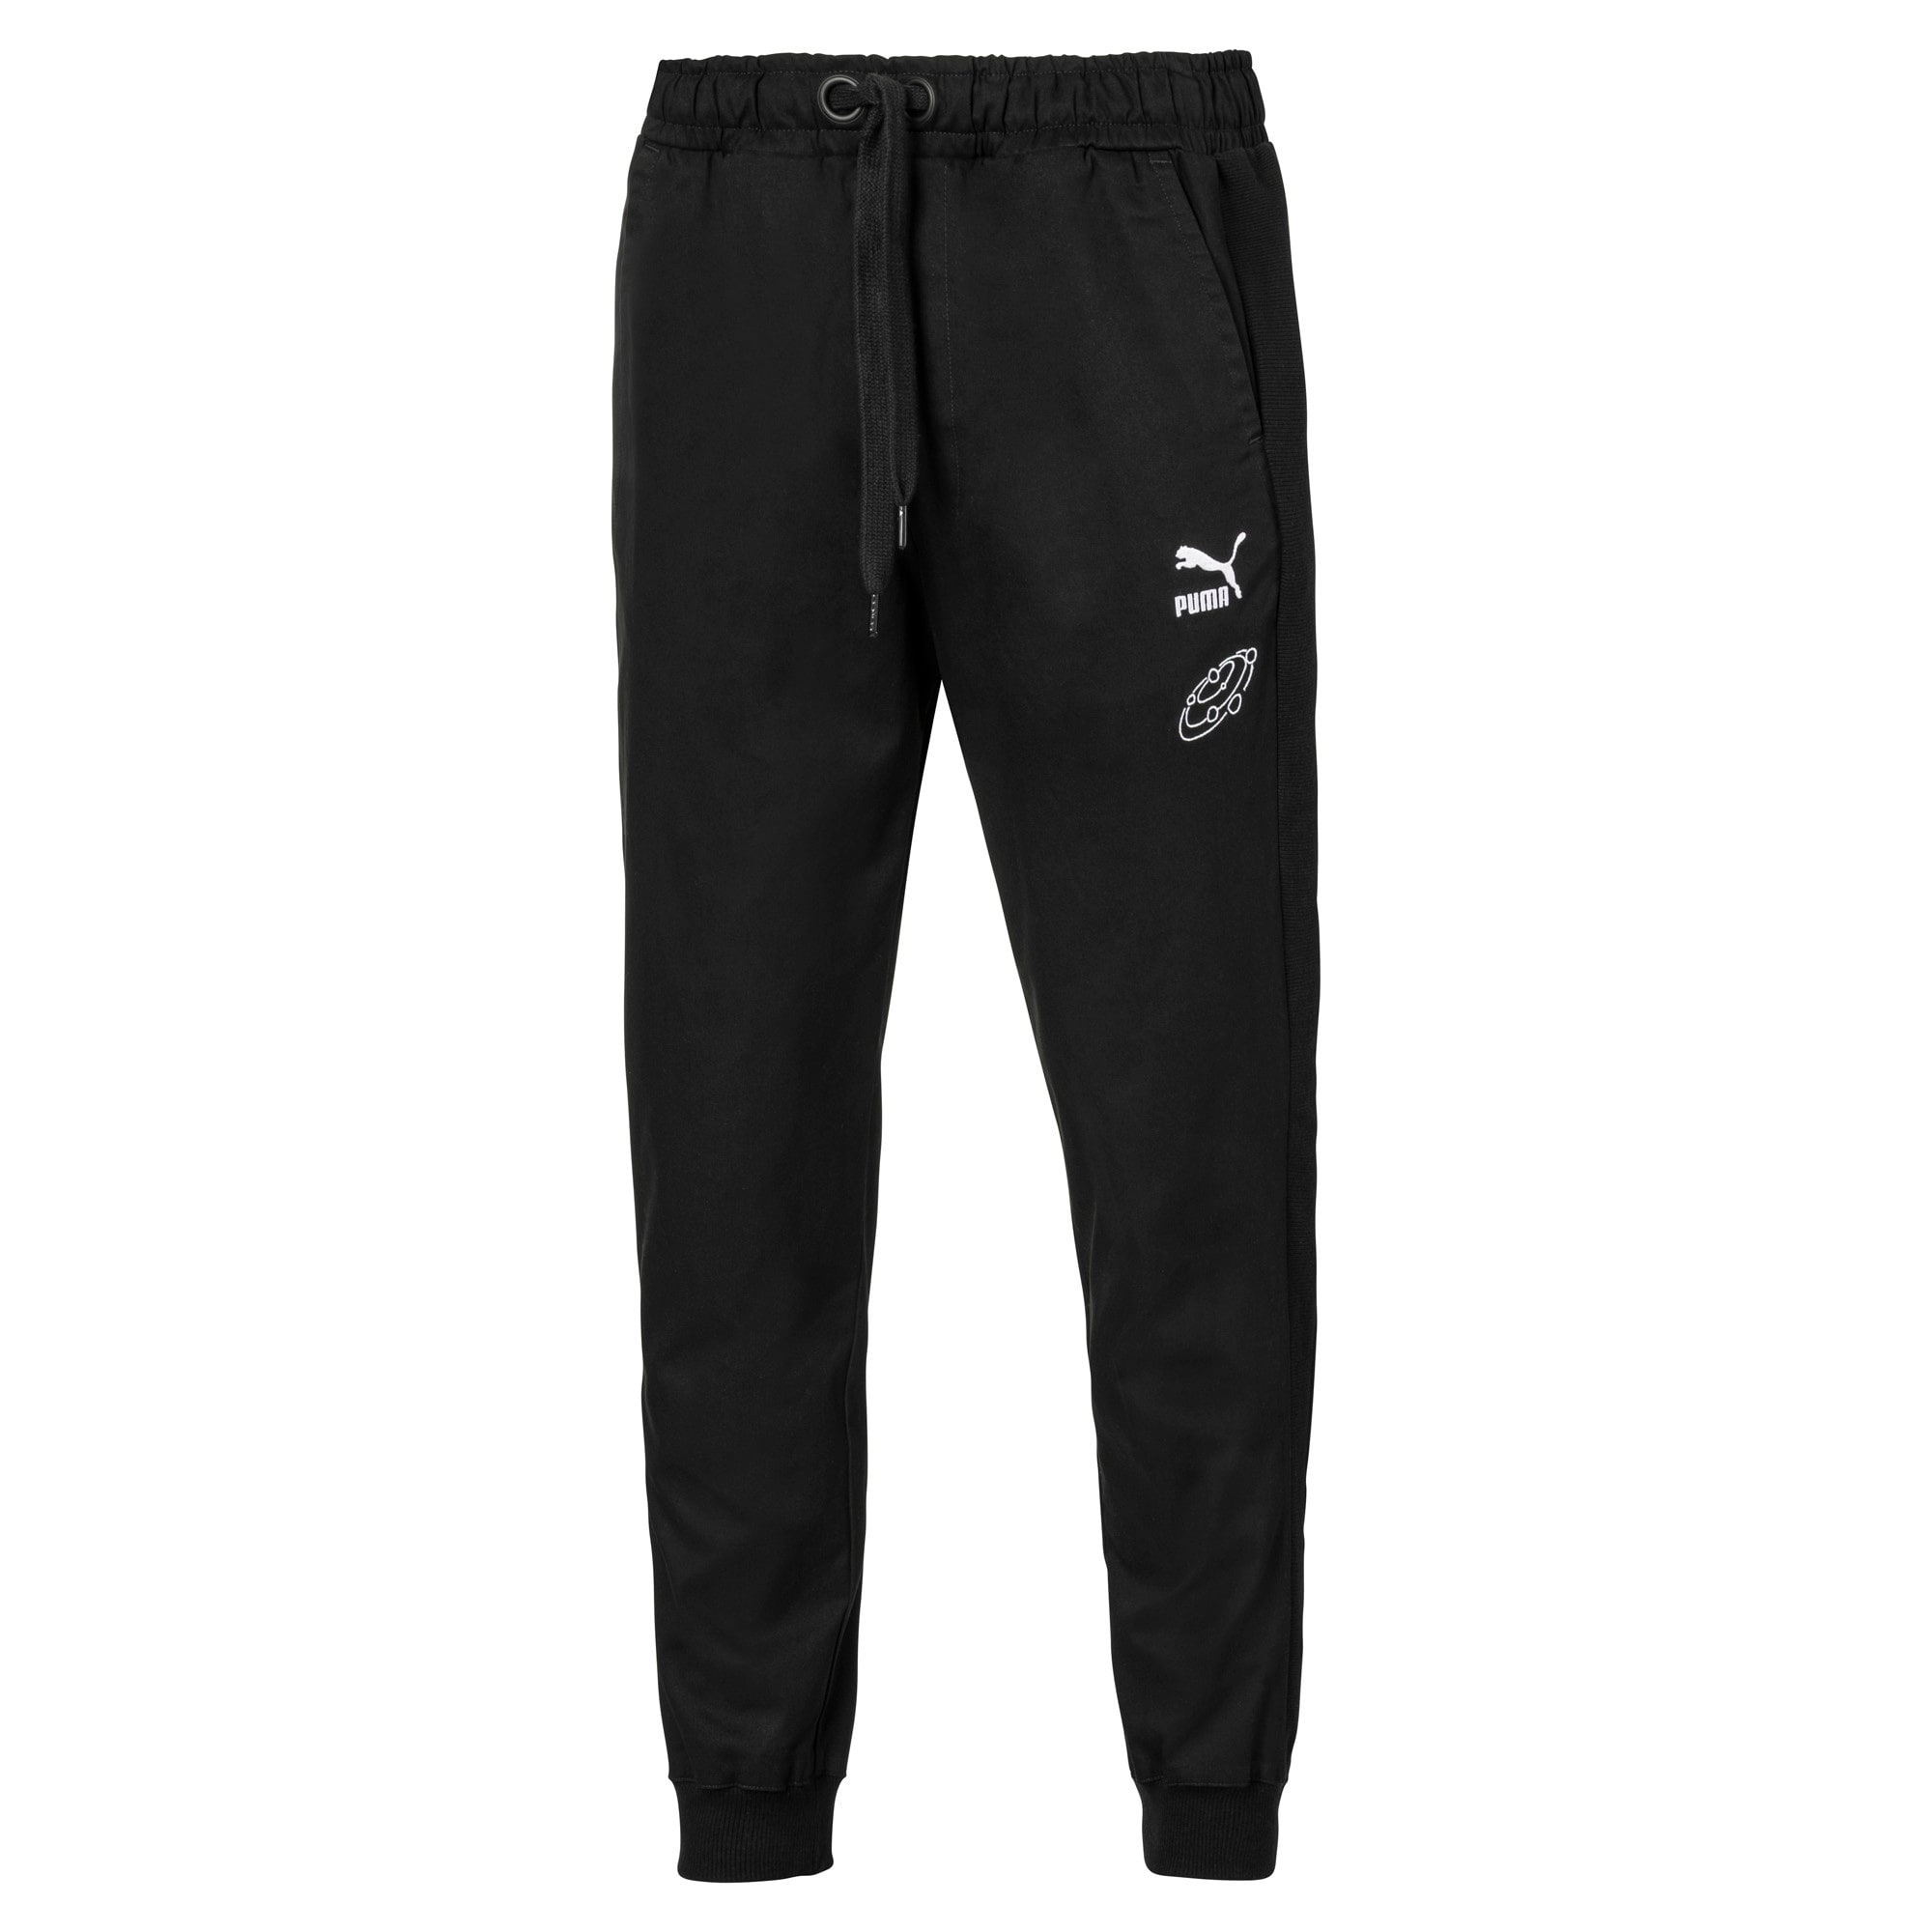 Thumbnail 1 of PUMA x TYAKASHA Herren Gewebte Hose, Cotton Black, medium